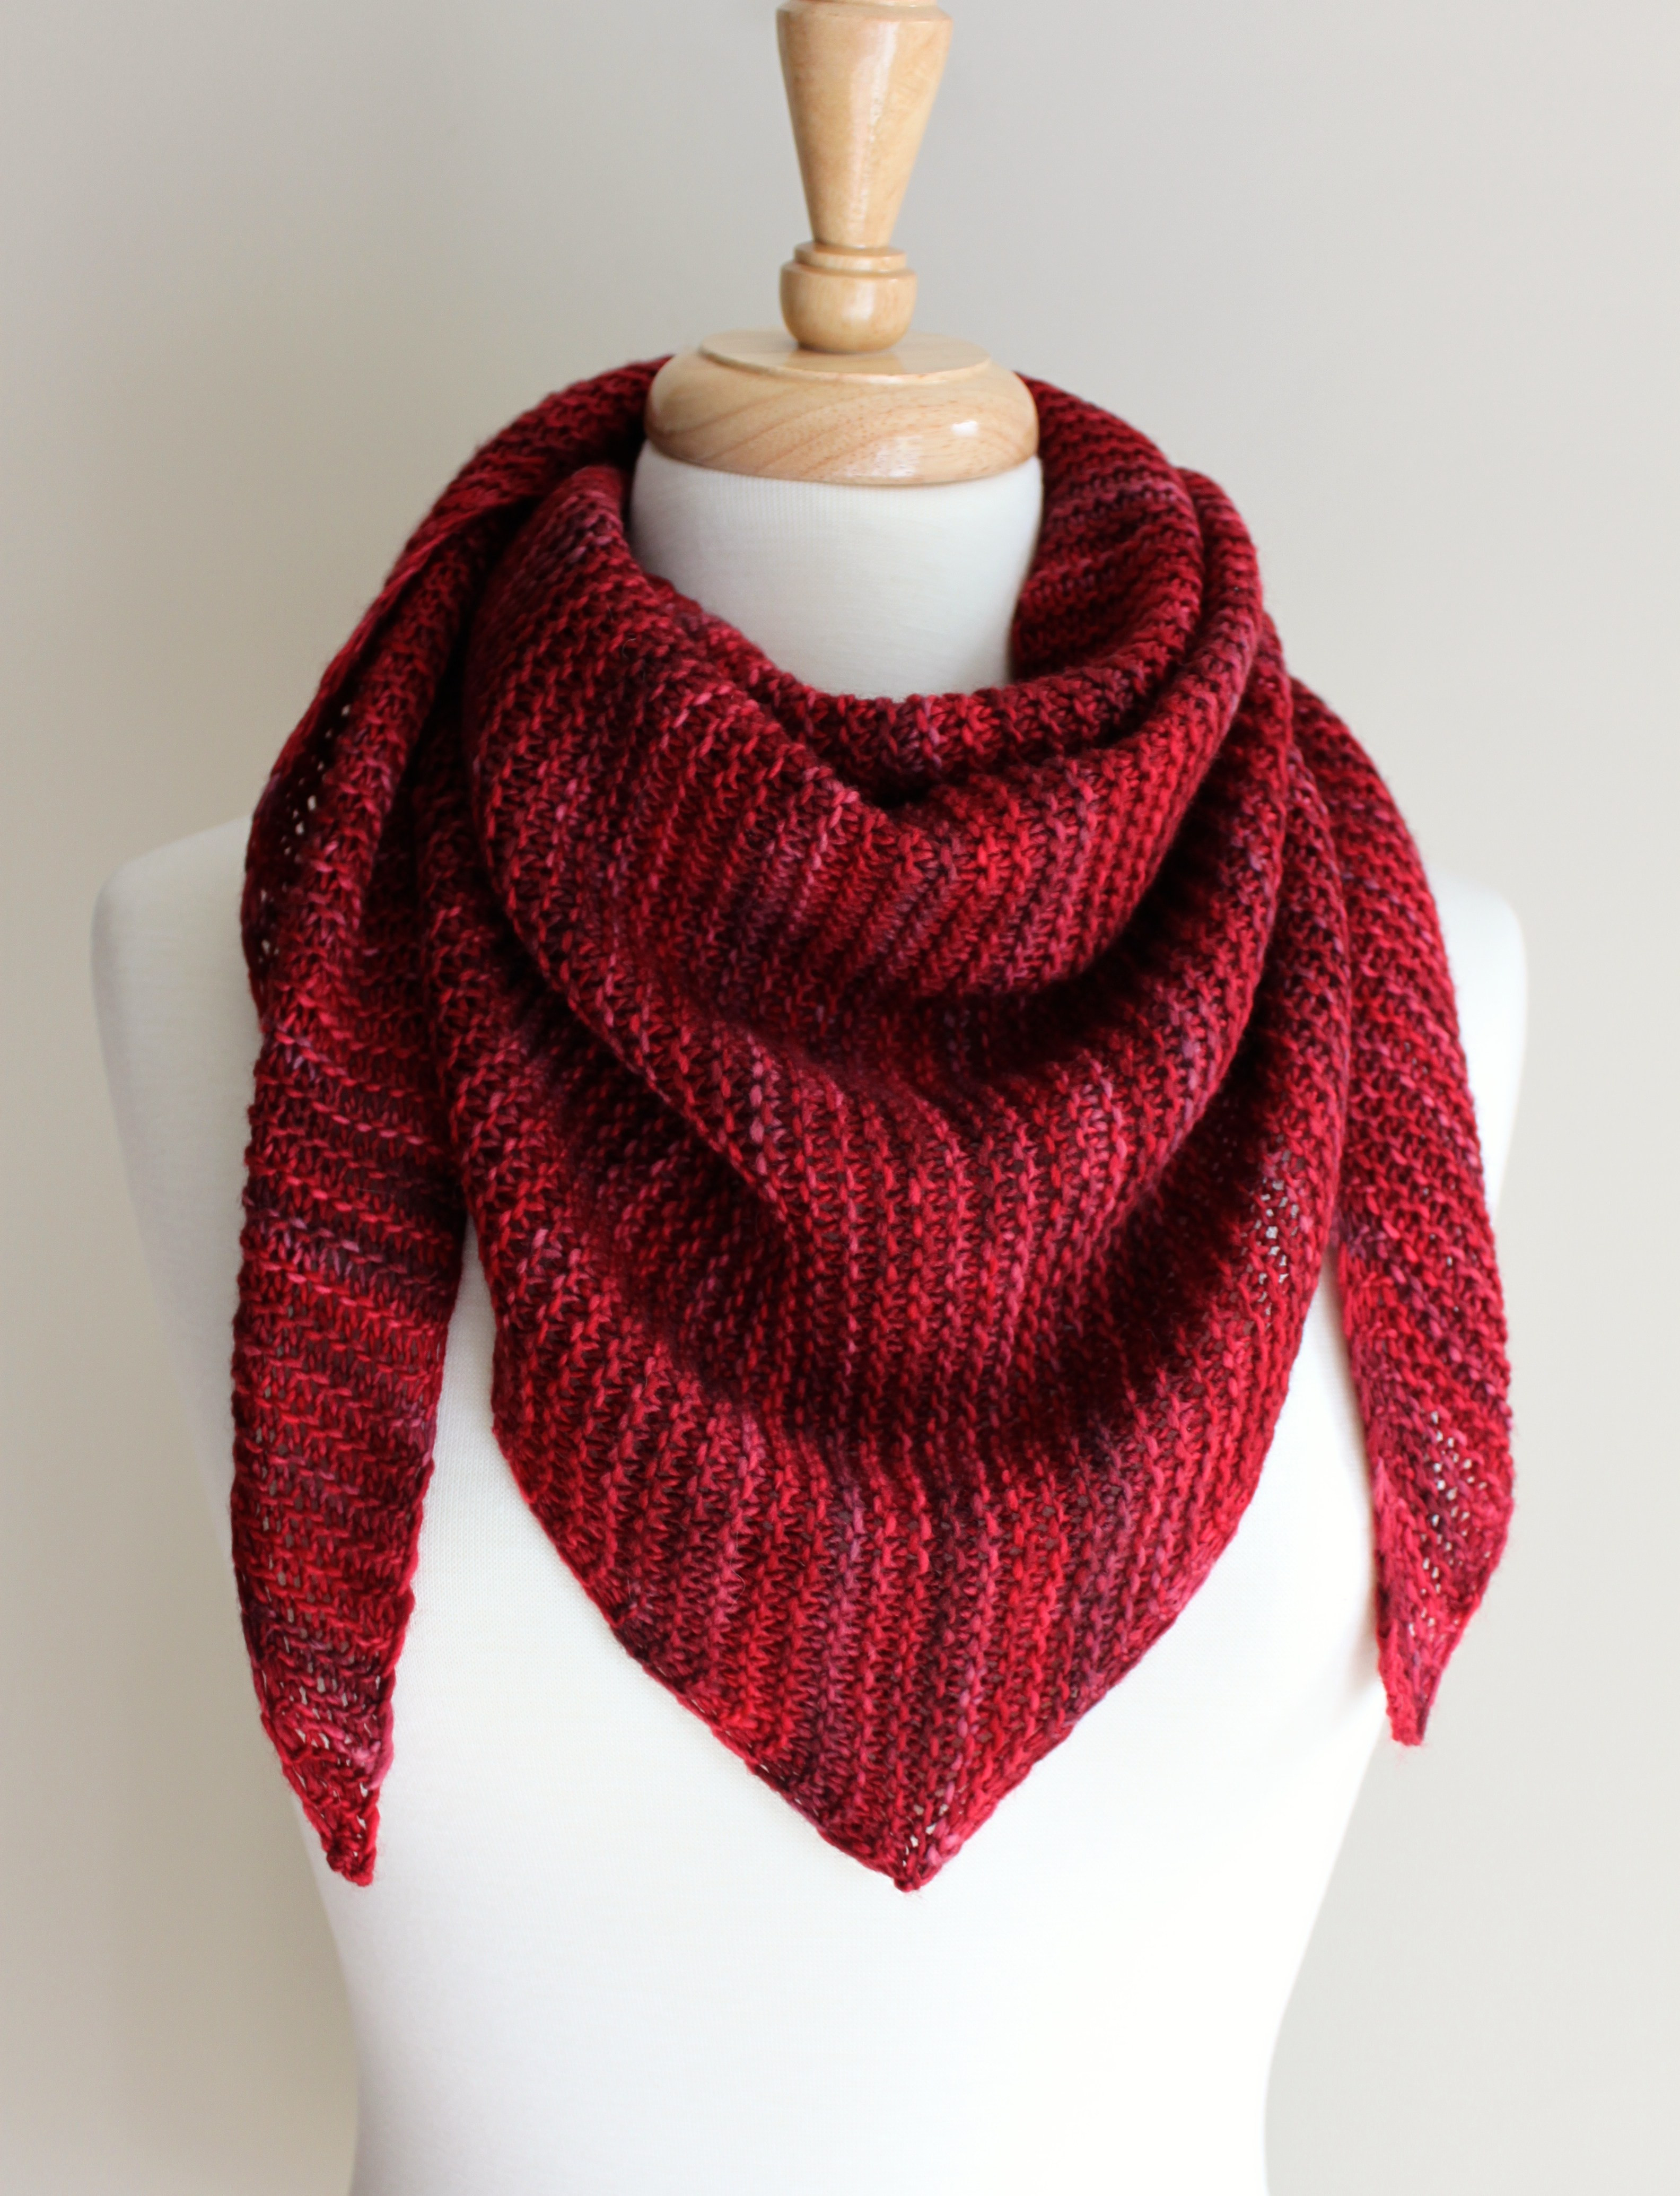 Knitted Scarf Luxury Free Knitting Patterns Truly Triangular Scarf Leah Of Great 41 Ideas Knitted Scarf